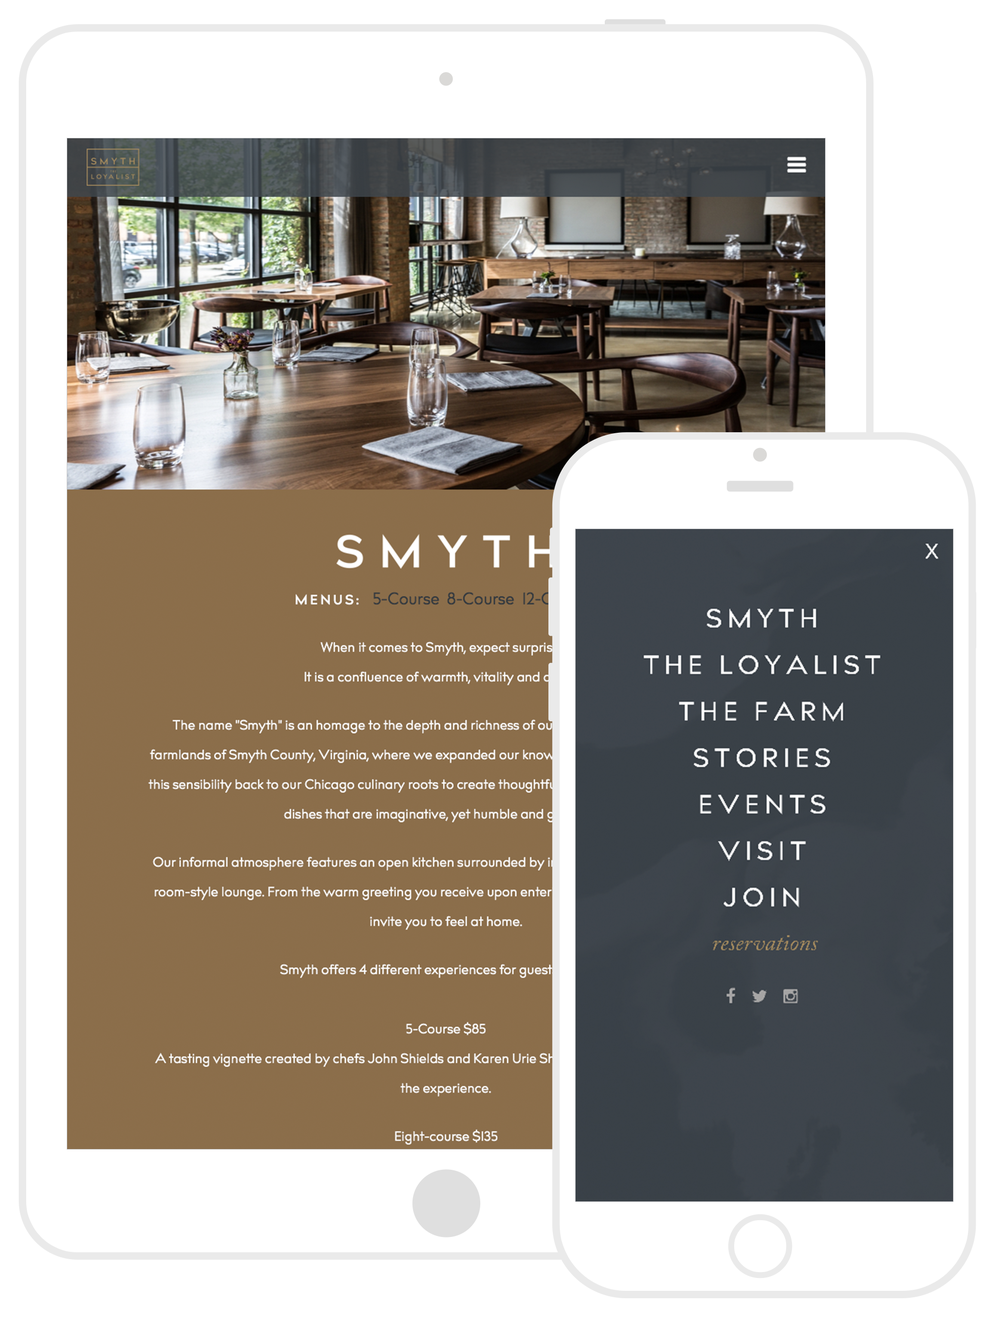 Responsive Web Design by Second + West for Smyth & The Loyalist in Chicago, IL